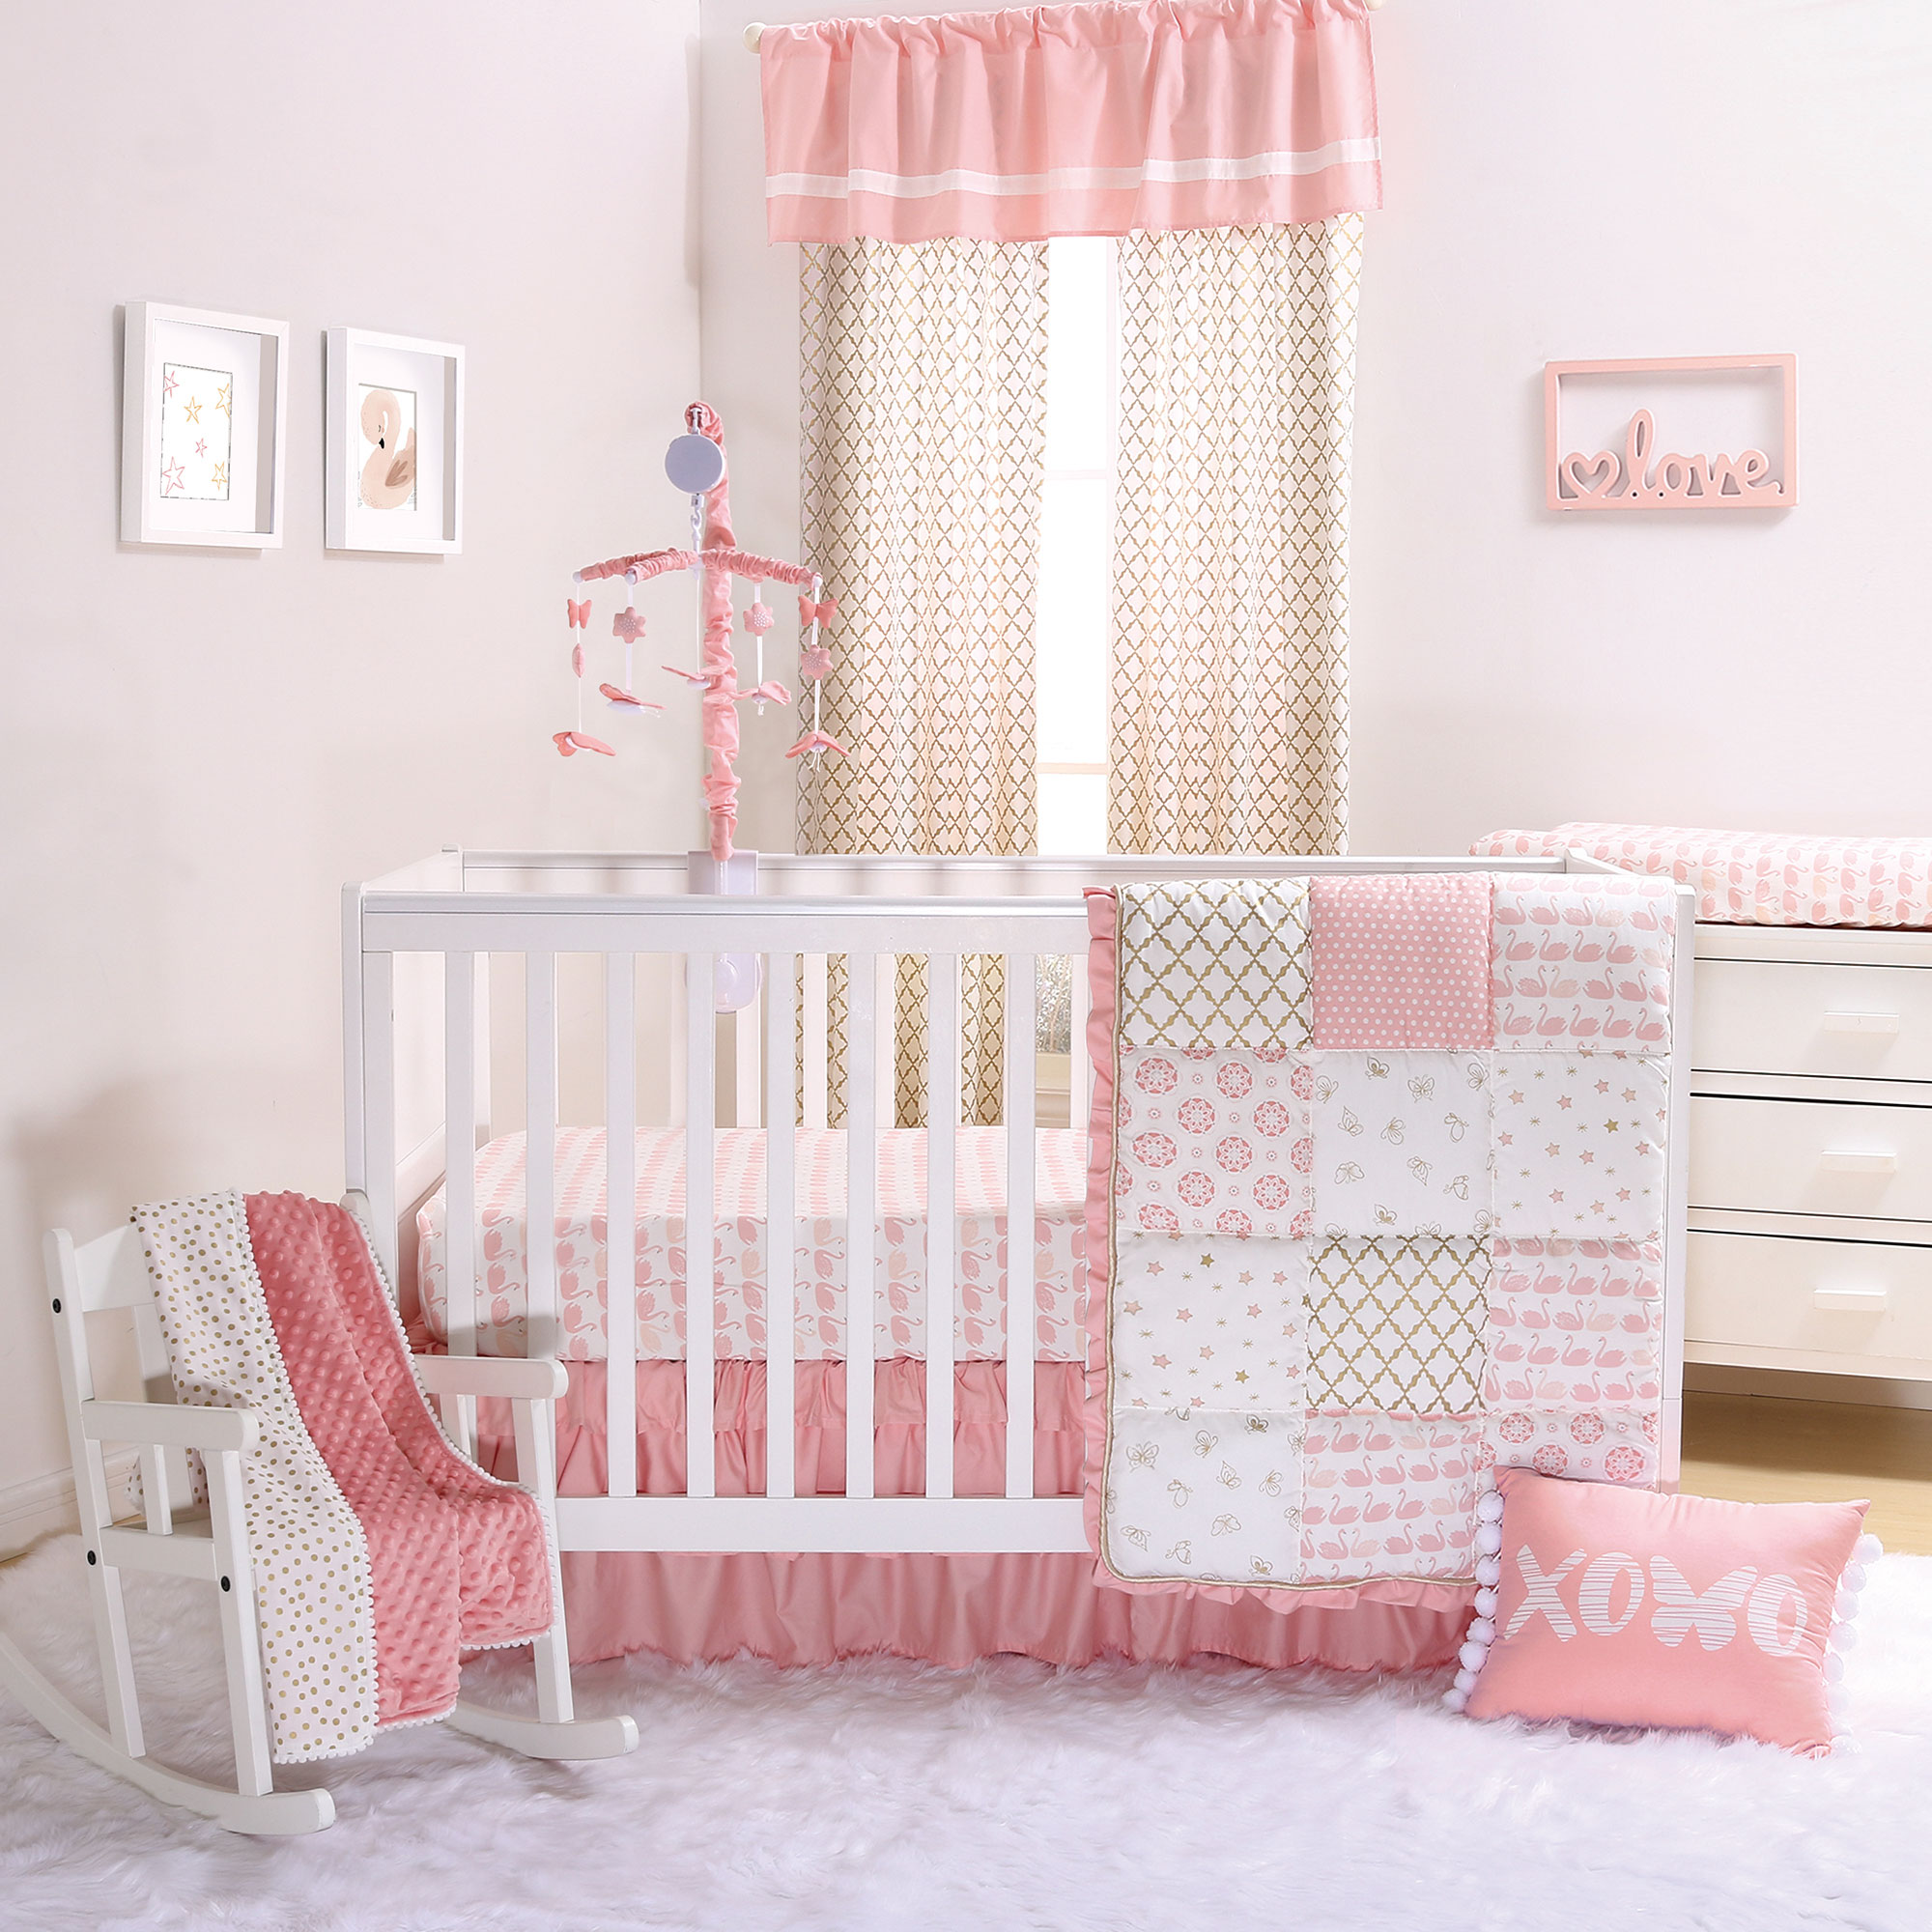 Sweet Swan Coral Pink and Gold Baby Girl Crib Bedding - 11 Piece Sleep Essentials Set